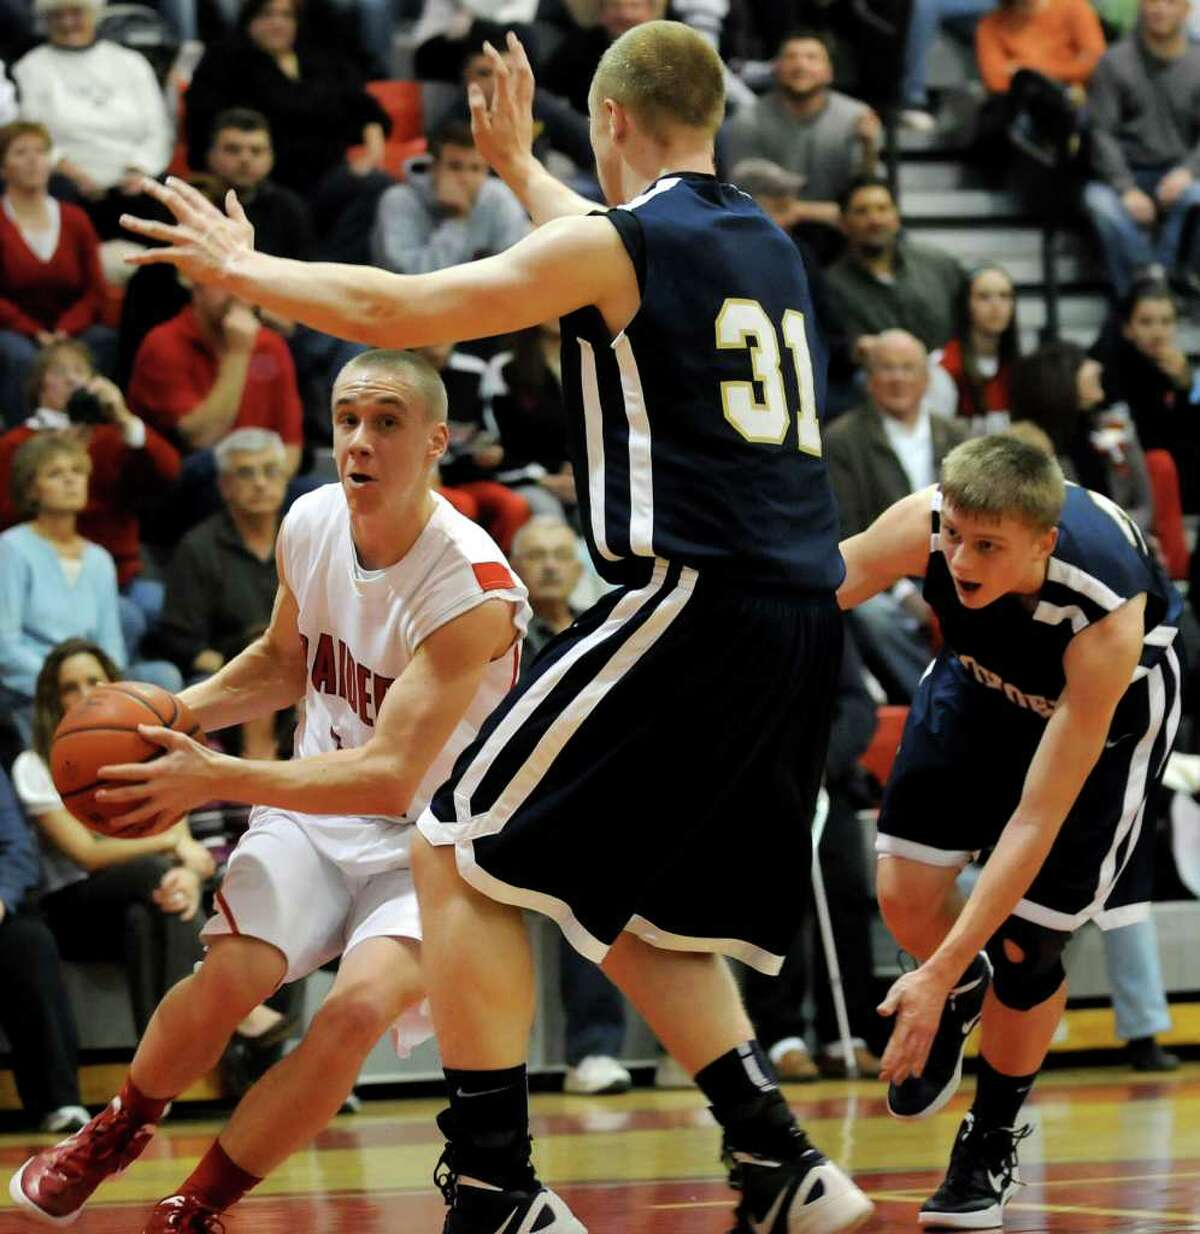 Mechanicville's Ryan McBride (15), left, controls the ball as Cohoes' Kevin Napier (31), center, and Nate Monson (32) defend during their basketball game on Thursday, Feb. 9, 2012, at Mechanicville High in Mechanicville, N.Y. Mechanicville wins 72-54. (Cindy Schultz / Times Union)